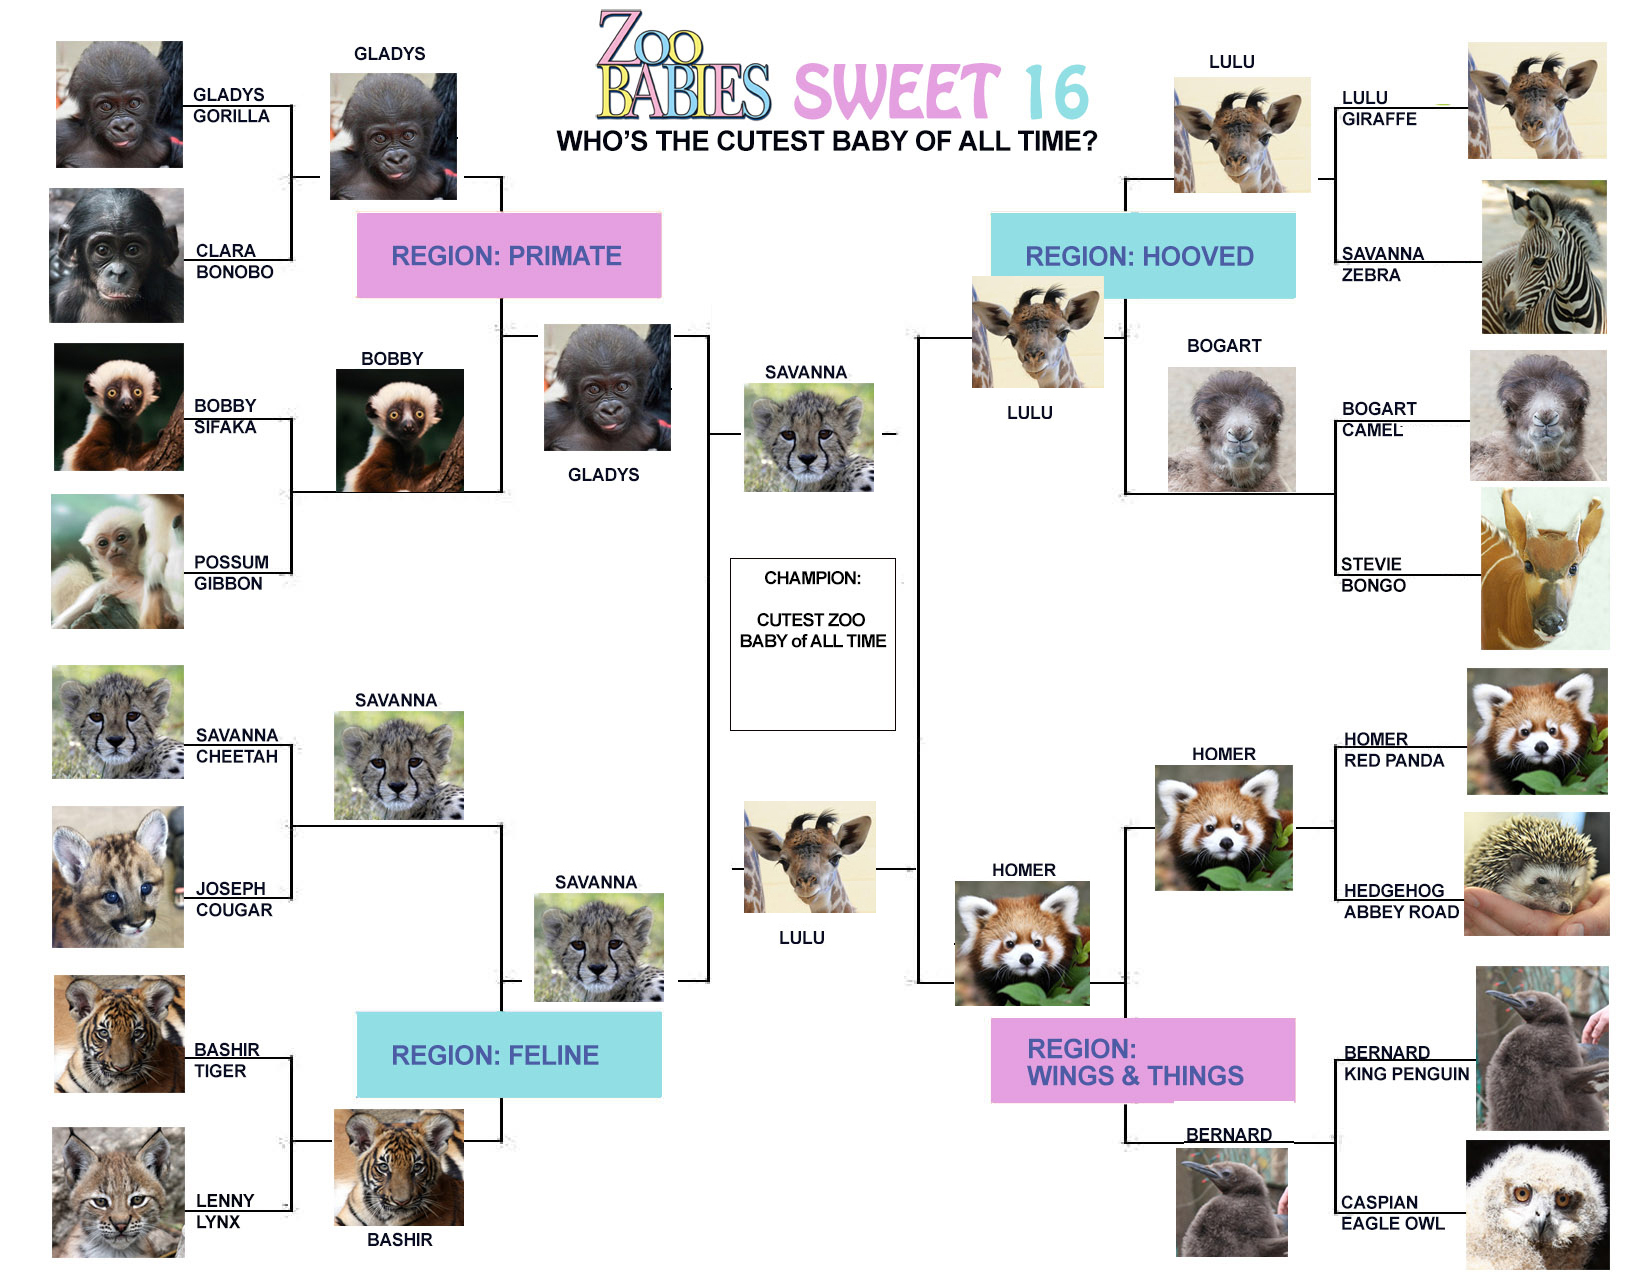 Only two cuties left!  Who will be the champion?  Lulu or Savanna?